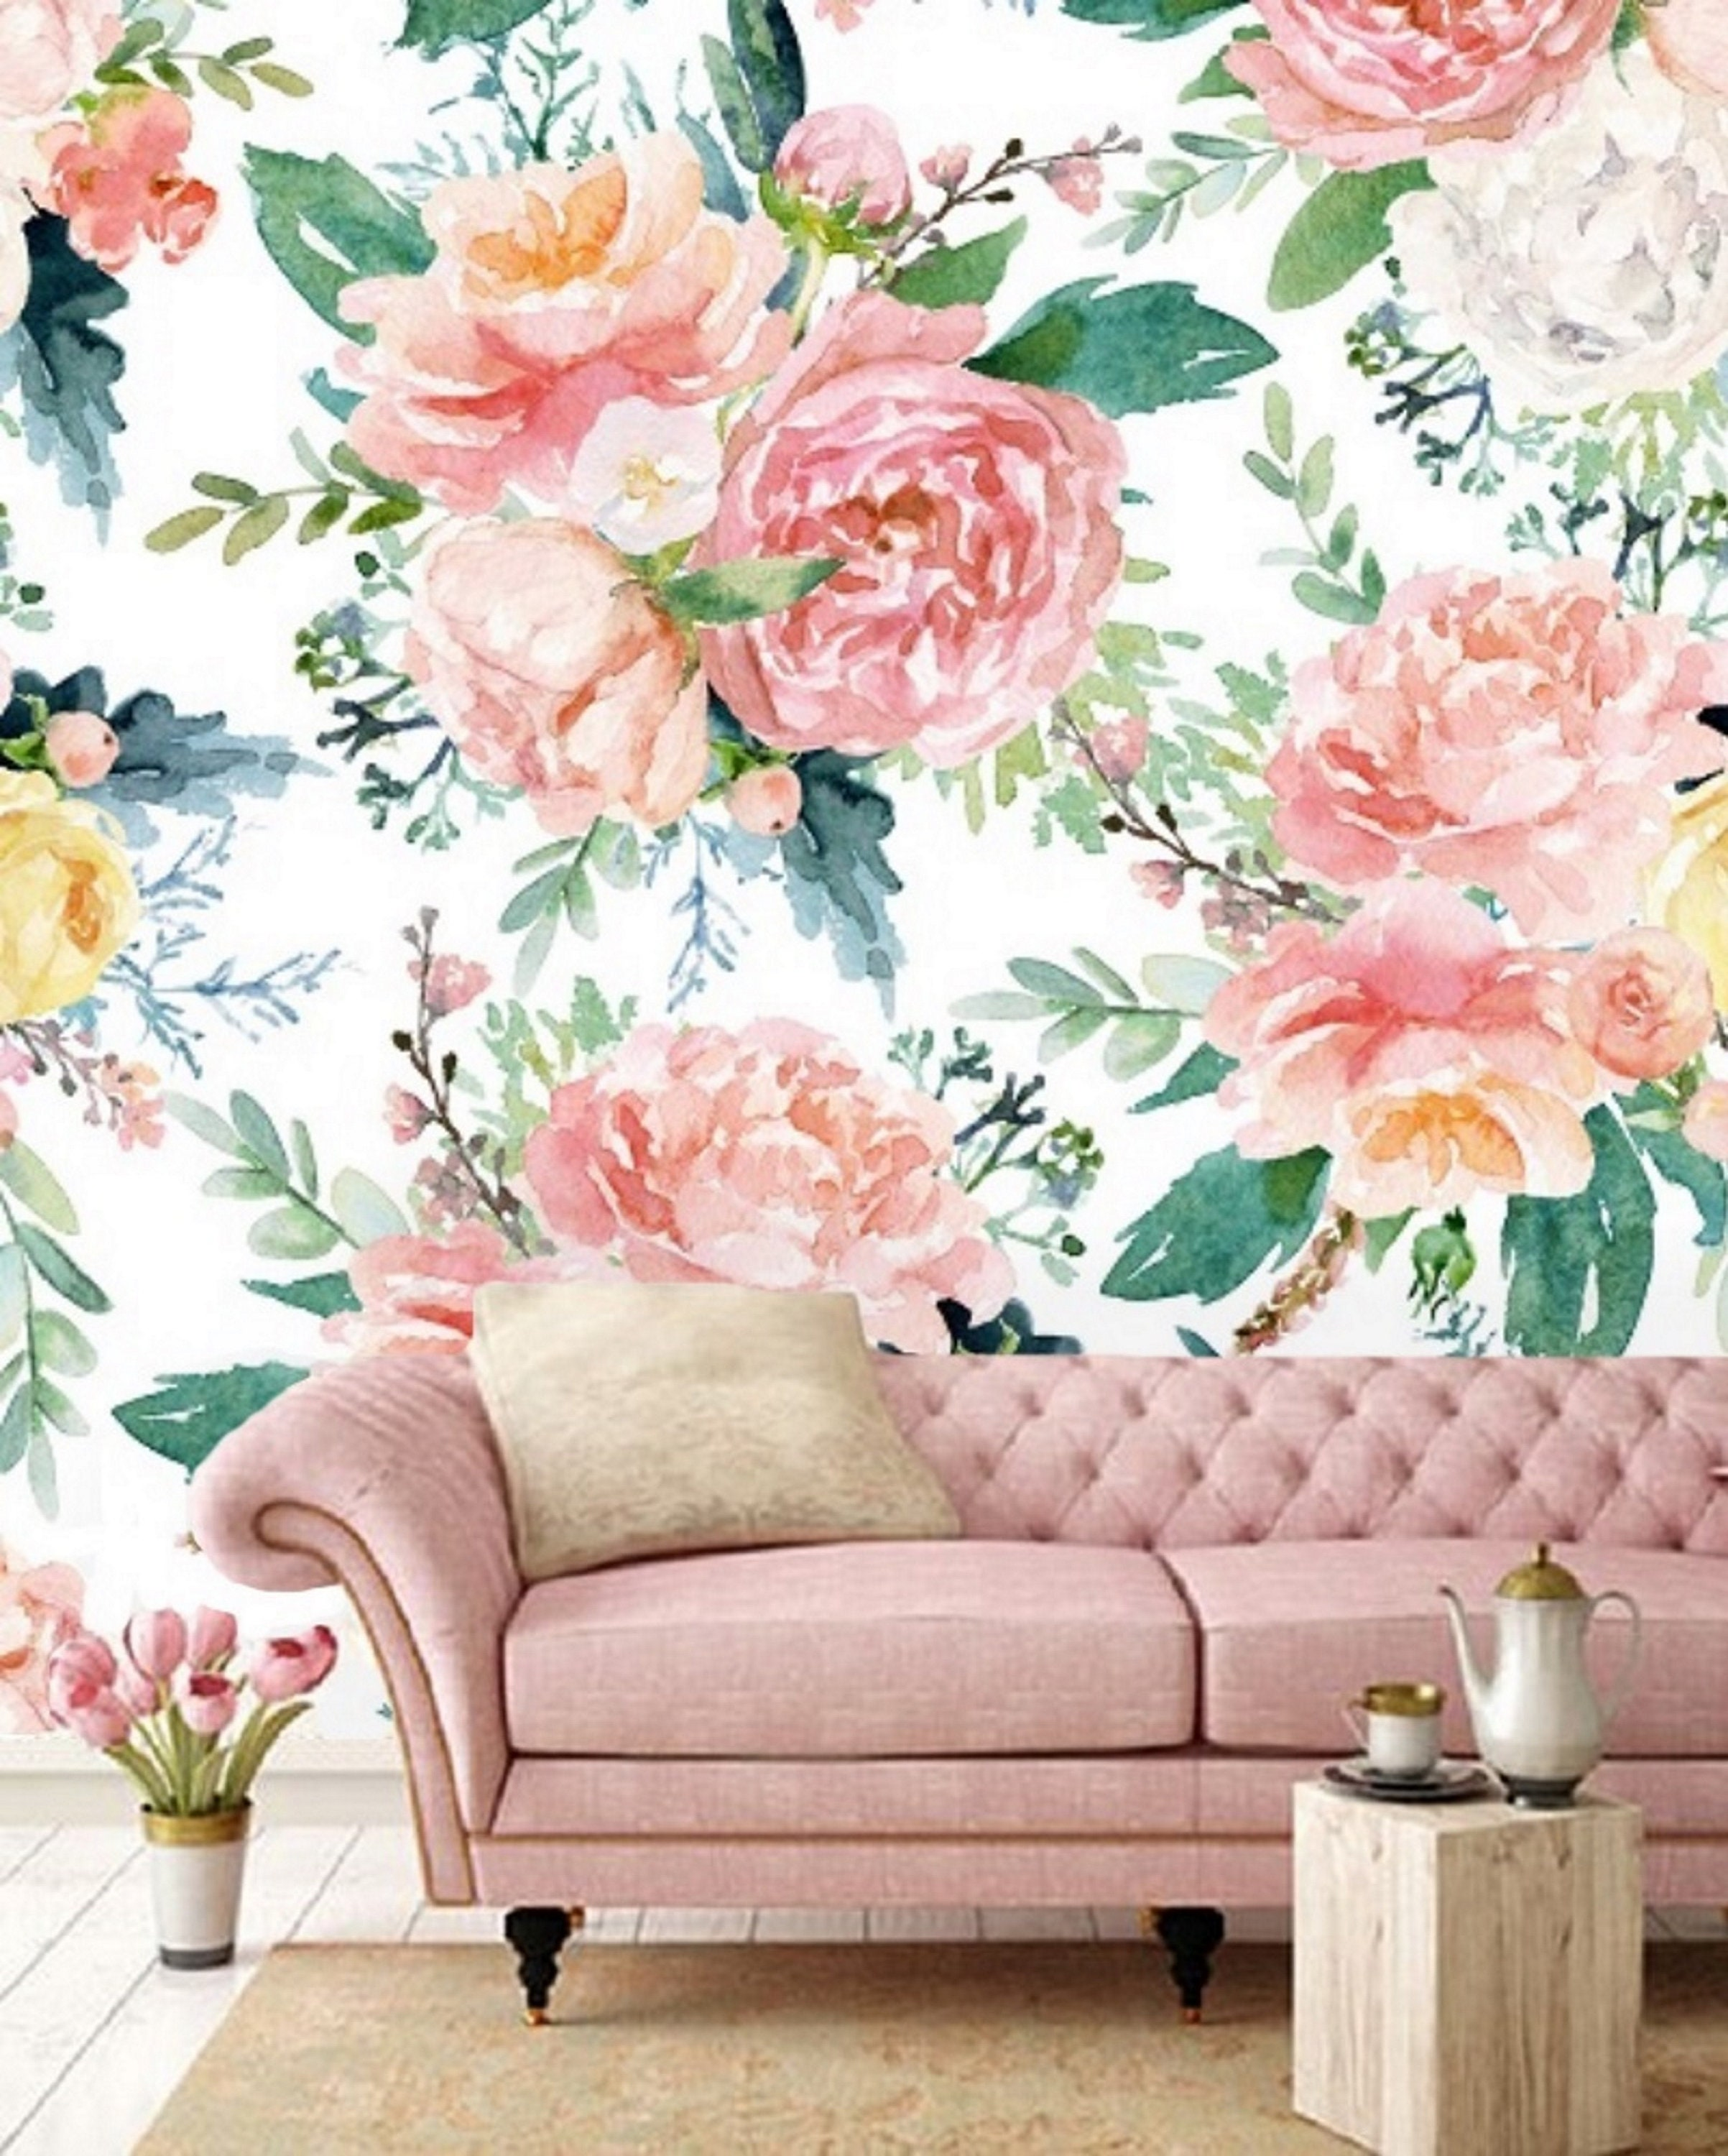 Peel And Stick Wall Mural Floral Wallpaper Mural Removable Etsy